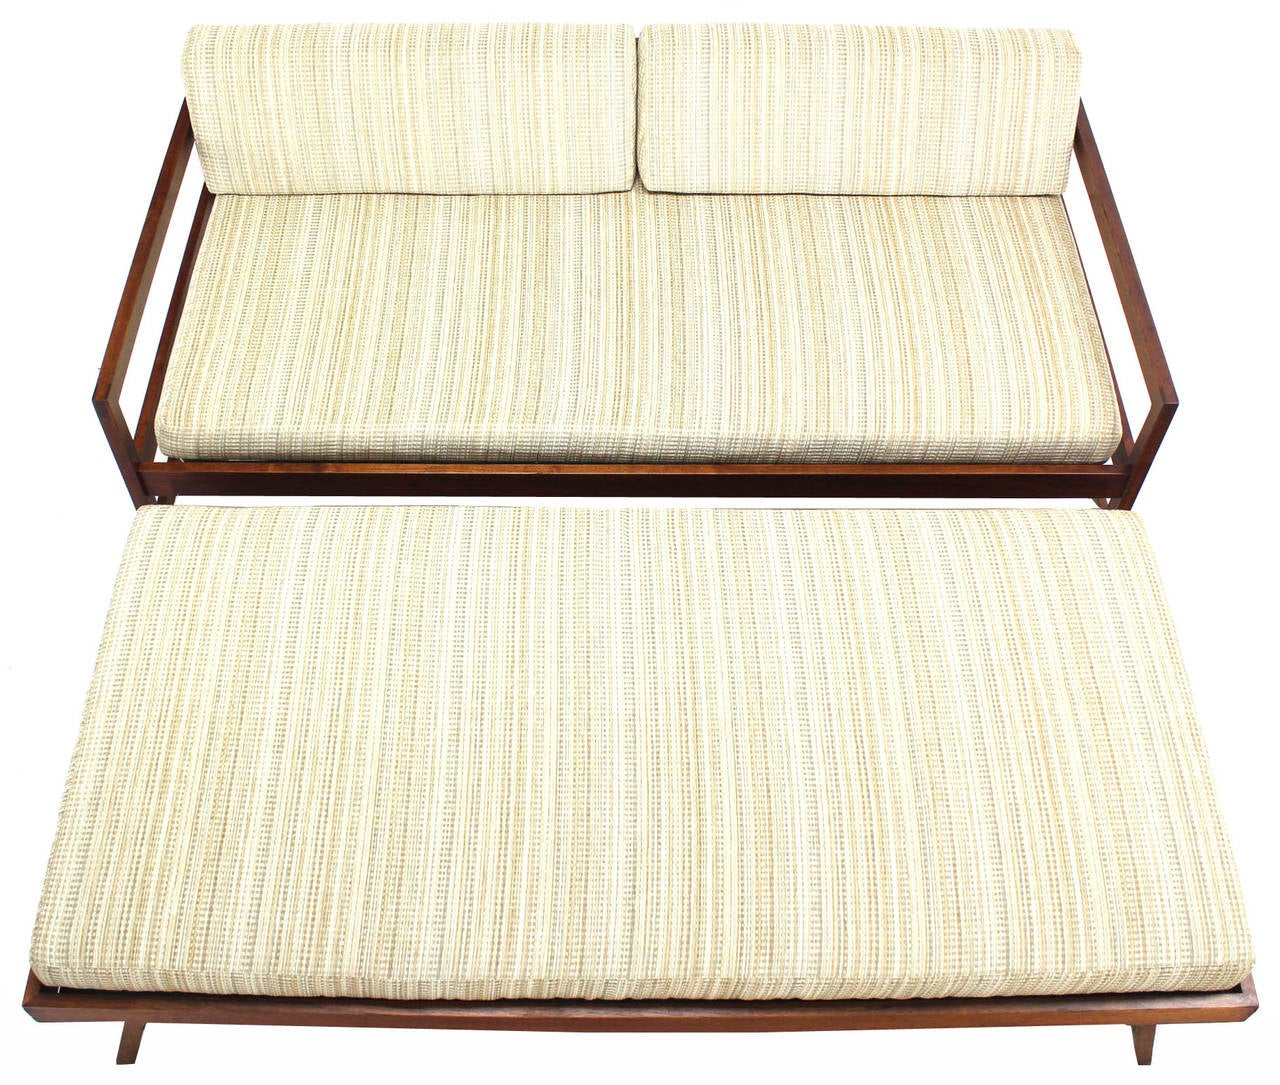 lounger sofa with pull out trundle black cushion covers solid walnut frame mid century modern